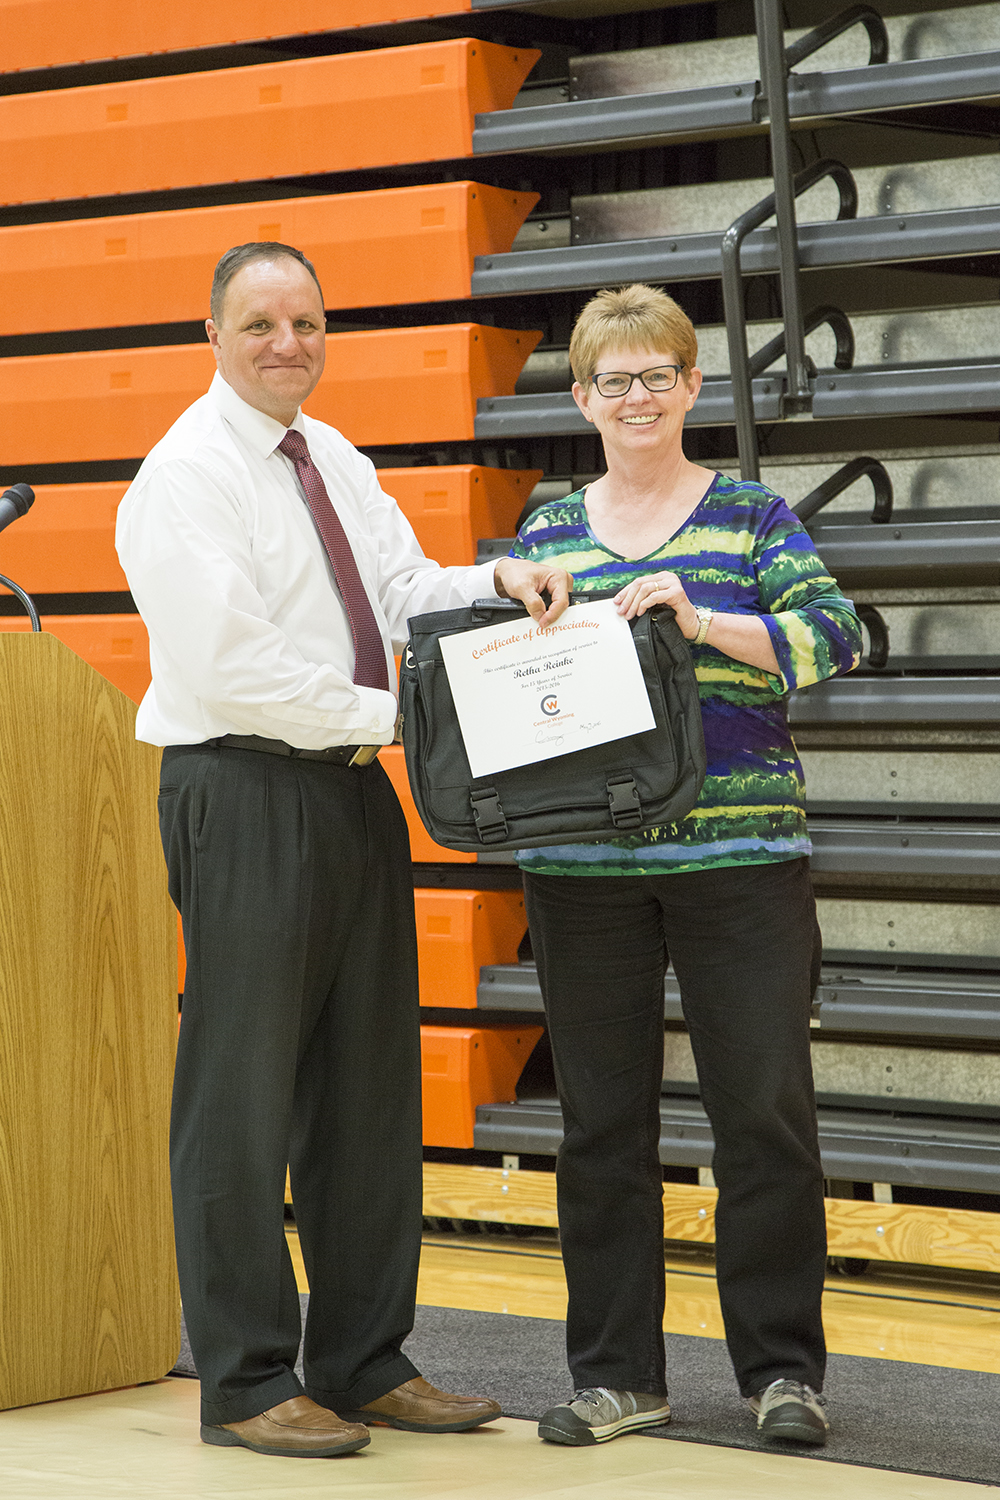 Retha Reinke receives an award for her years of service.